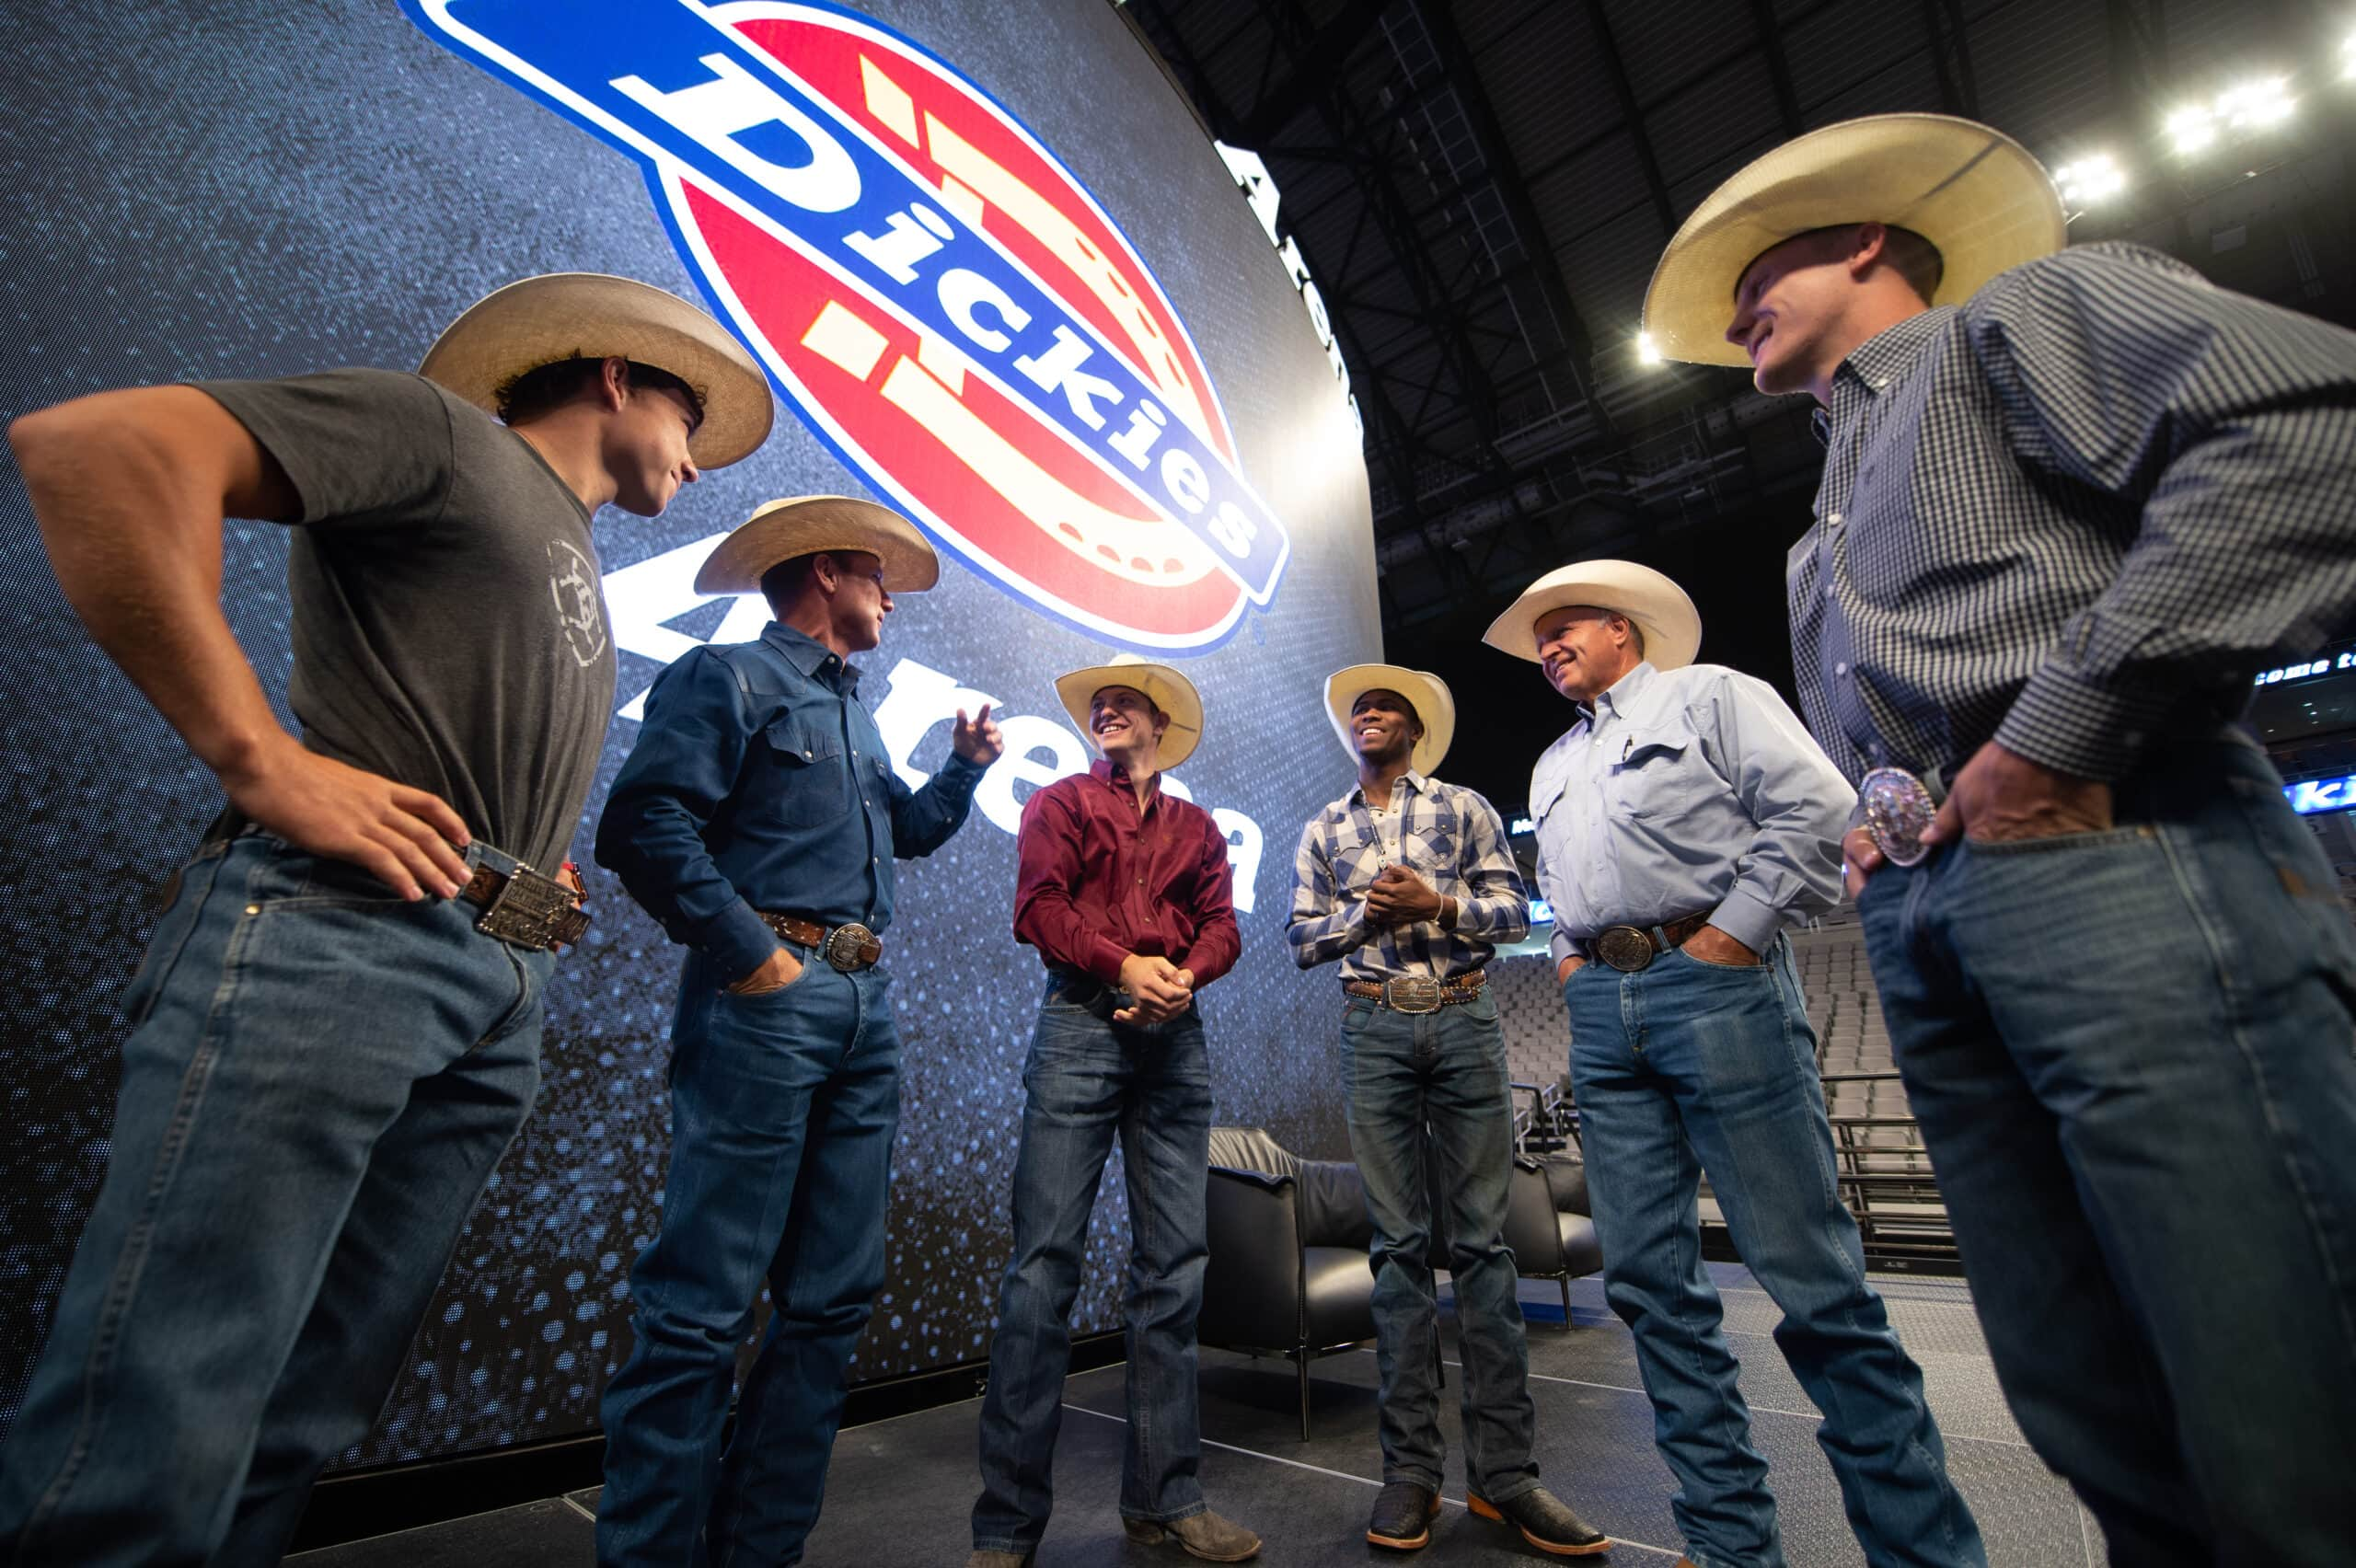 Bull Riders during PBR World Finals